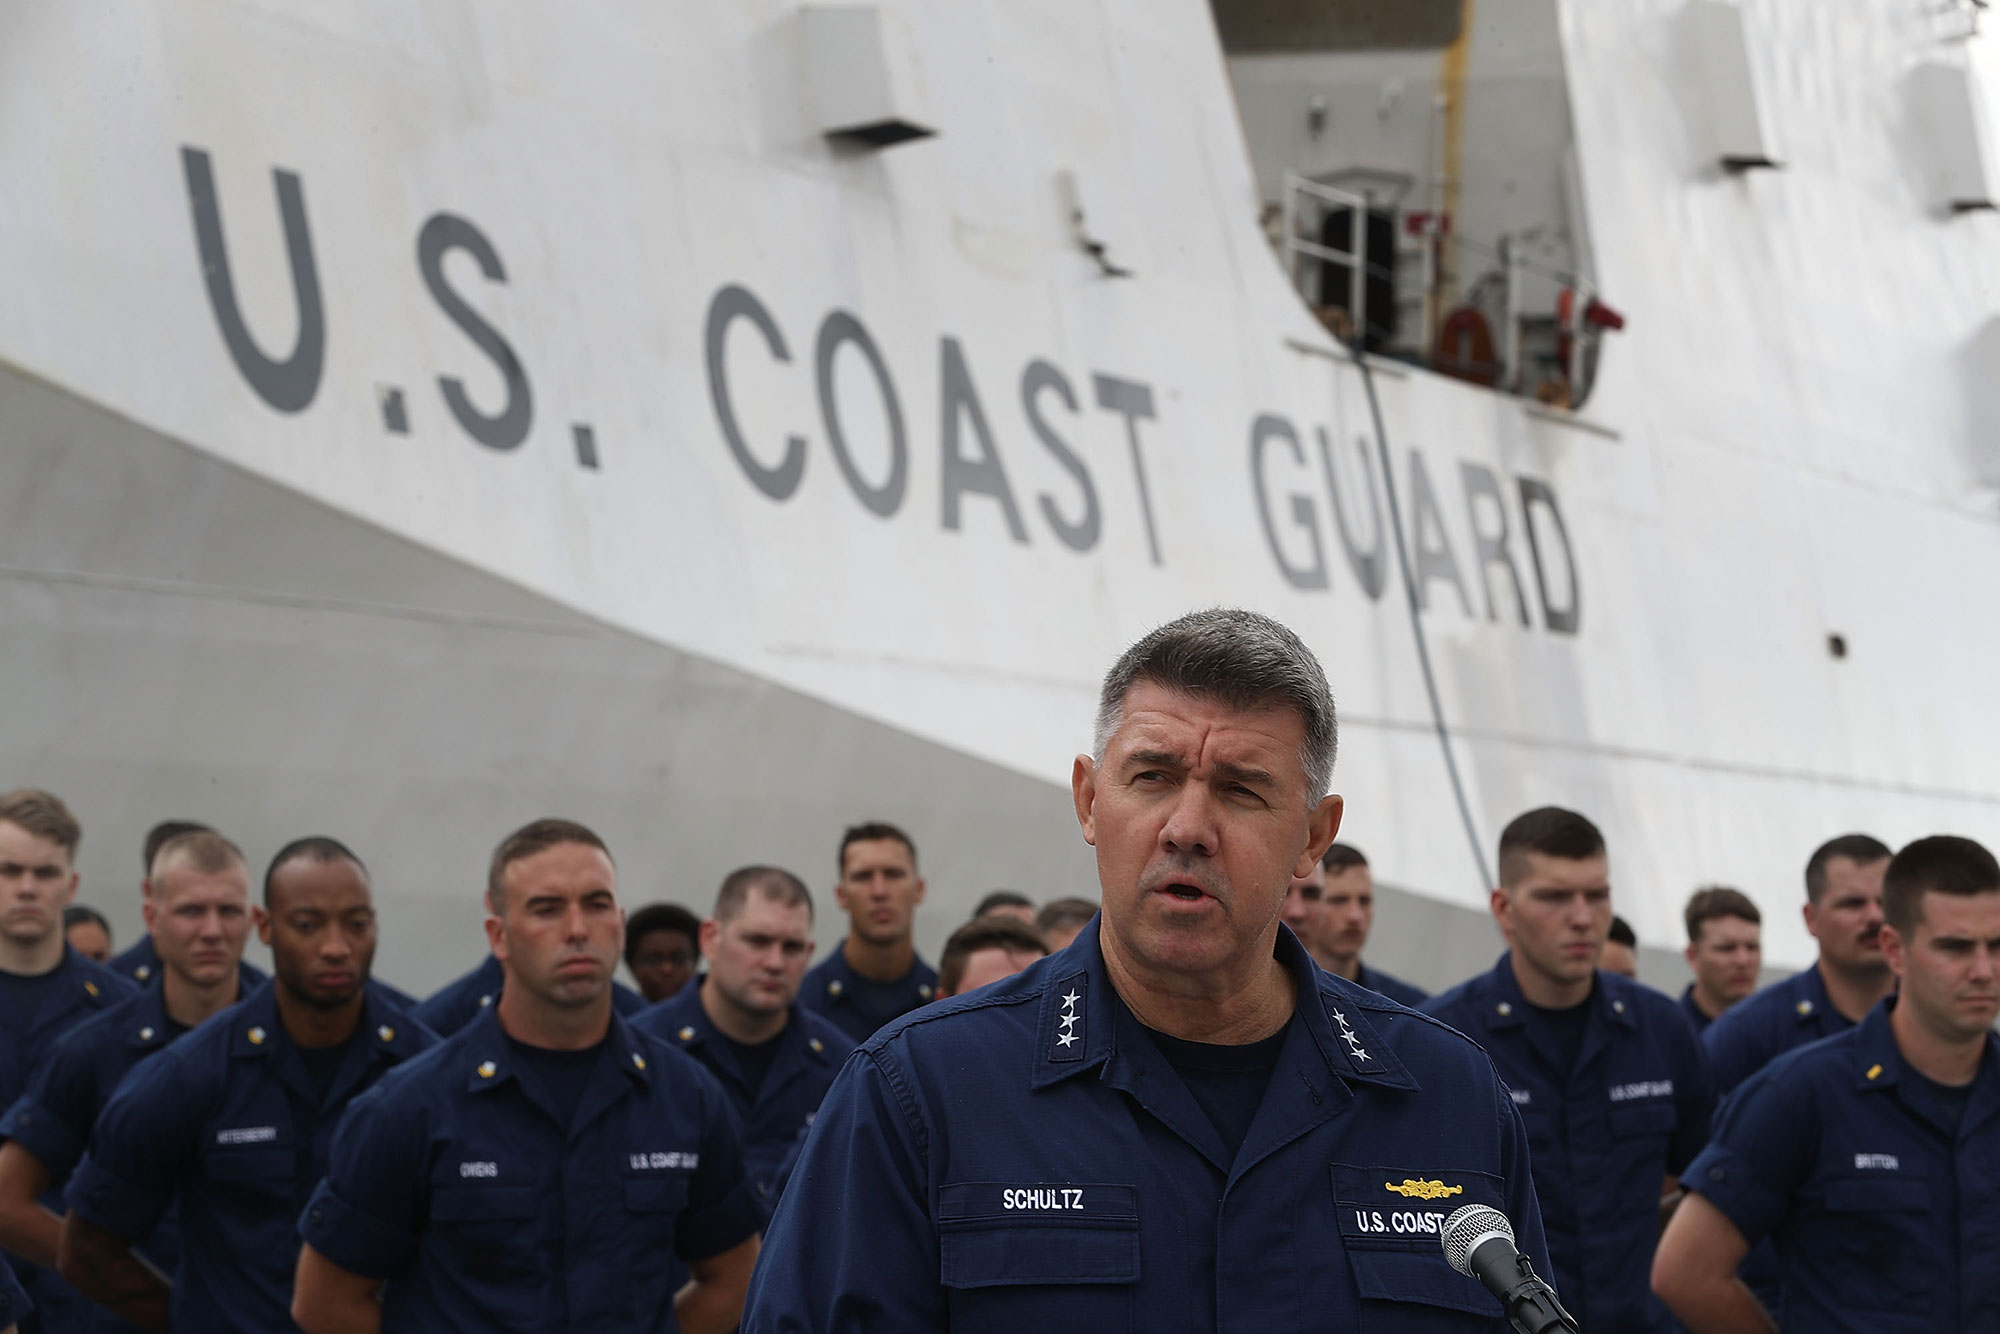 FORT LAUDERDALE, FL - DECEMBER 15: Vice Admiral Karl Schultz, Commander, Coast Guard. Atlantic Area, speaks to the media about the U.S. Coast Guard ship Hamilton and the approximately 26.5 tons of cocaine that was being prepared to be offloaded at Port Everglades on December 15, 2016 in Fort Lauderdale, Florida. The drugs worth an estimated $715 million were from 27 separate, suspected drug smuggling vessel interdictions and five bale recovery operations by the U.S. Coast Guard, Royal Canadian Naval crews and its interagency partners. (Photo by Joe Raedle/Getty Images)